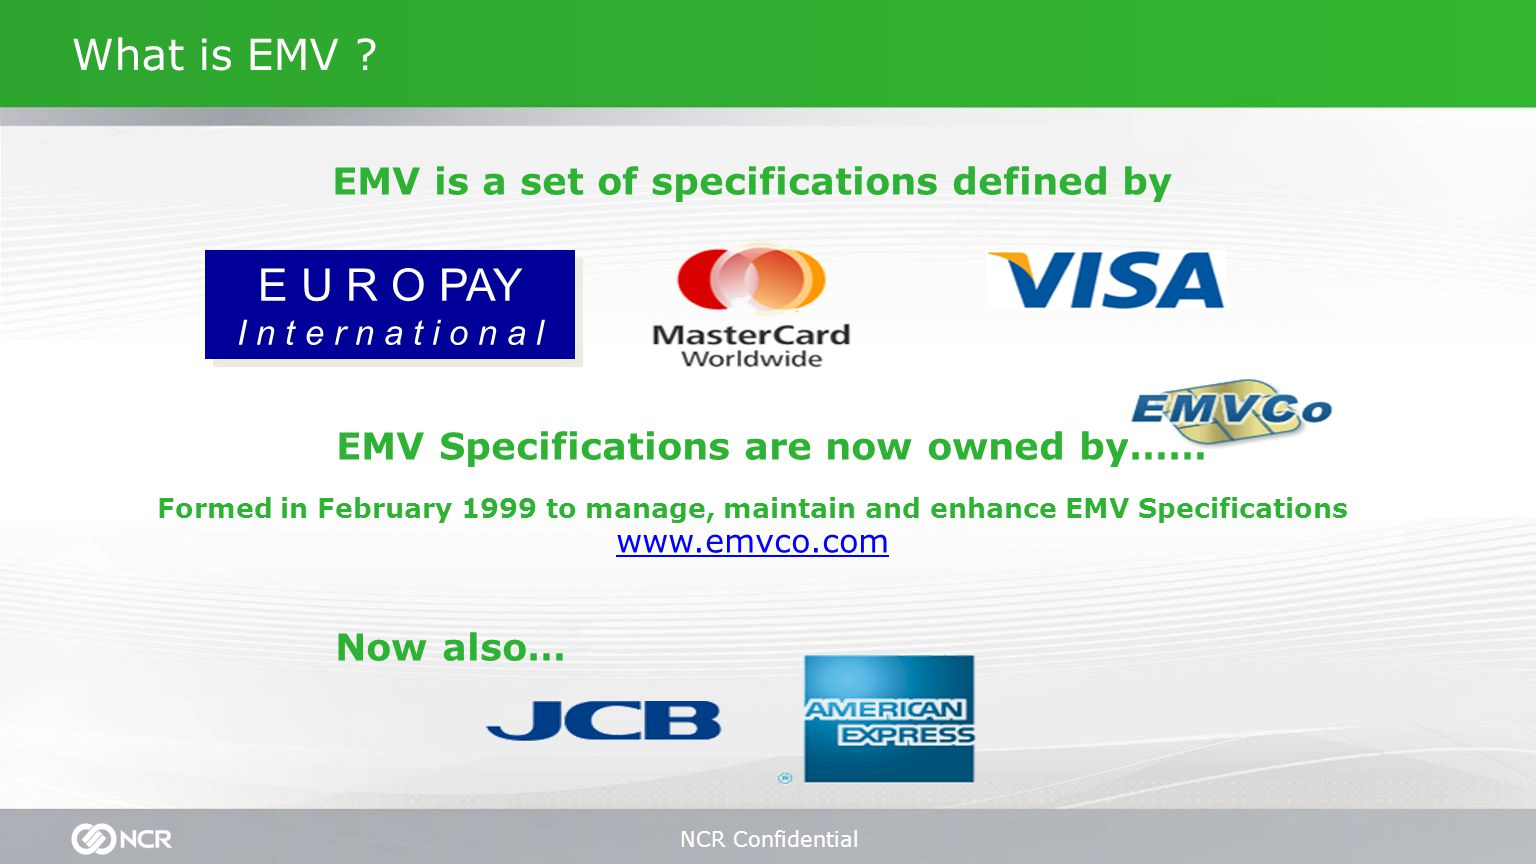 NCR Confidential What is EMV .